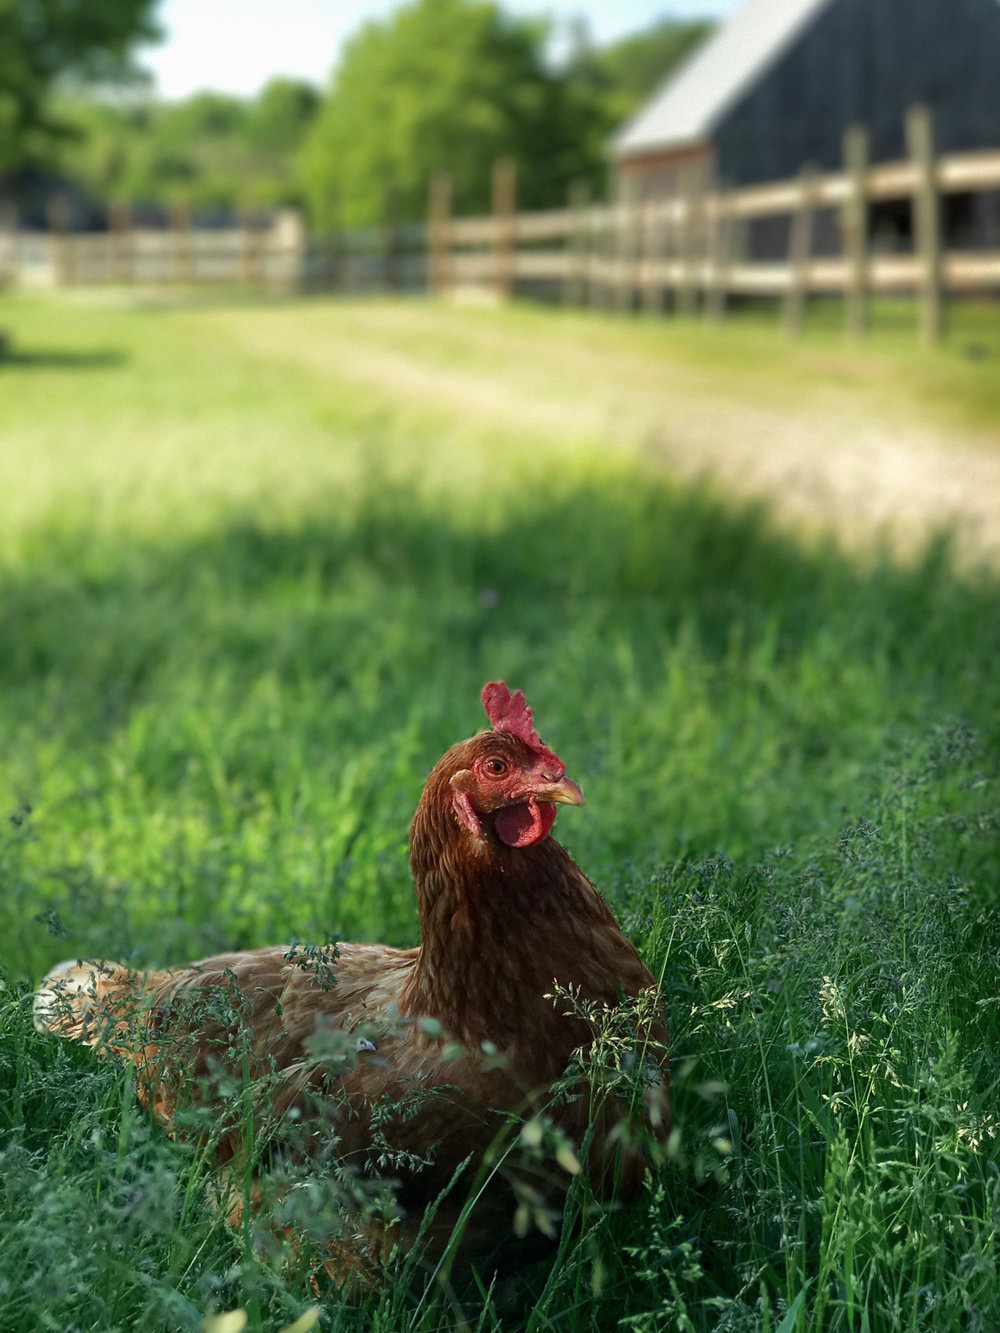 CHICKEN IN GRASS.jpg